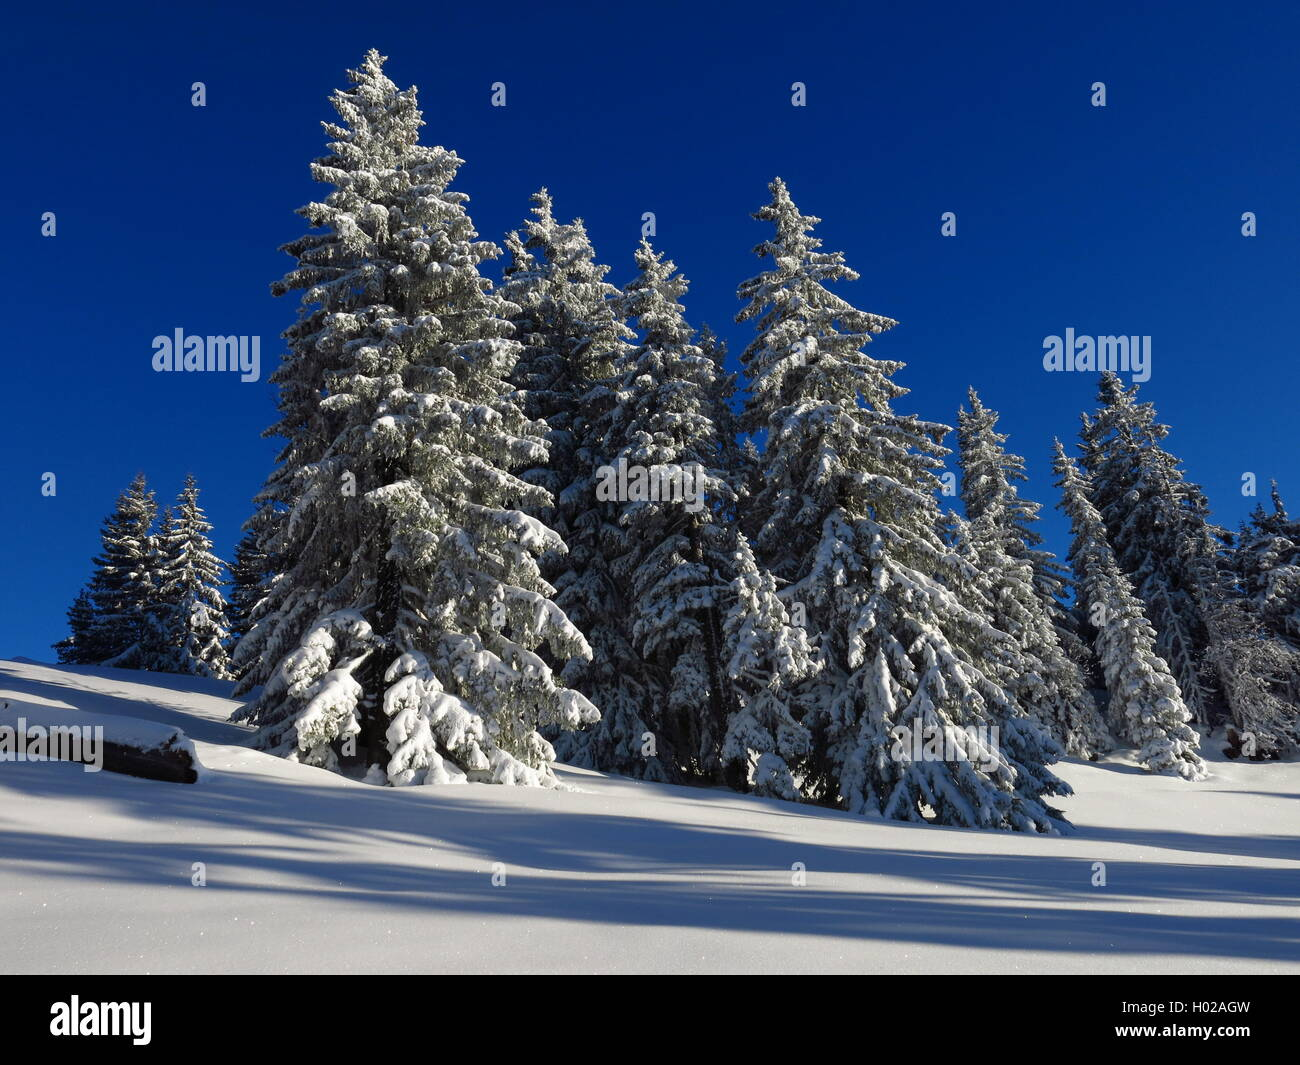 Snow covered firs in the Bernese Oberland. Idyllic winter scene. - Stock Image